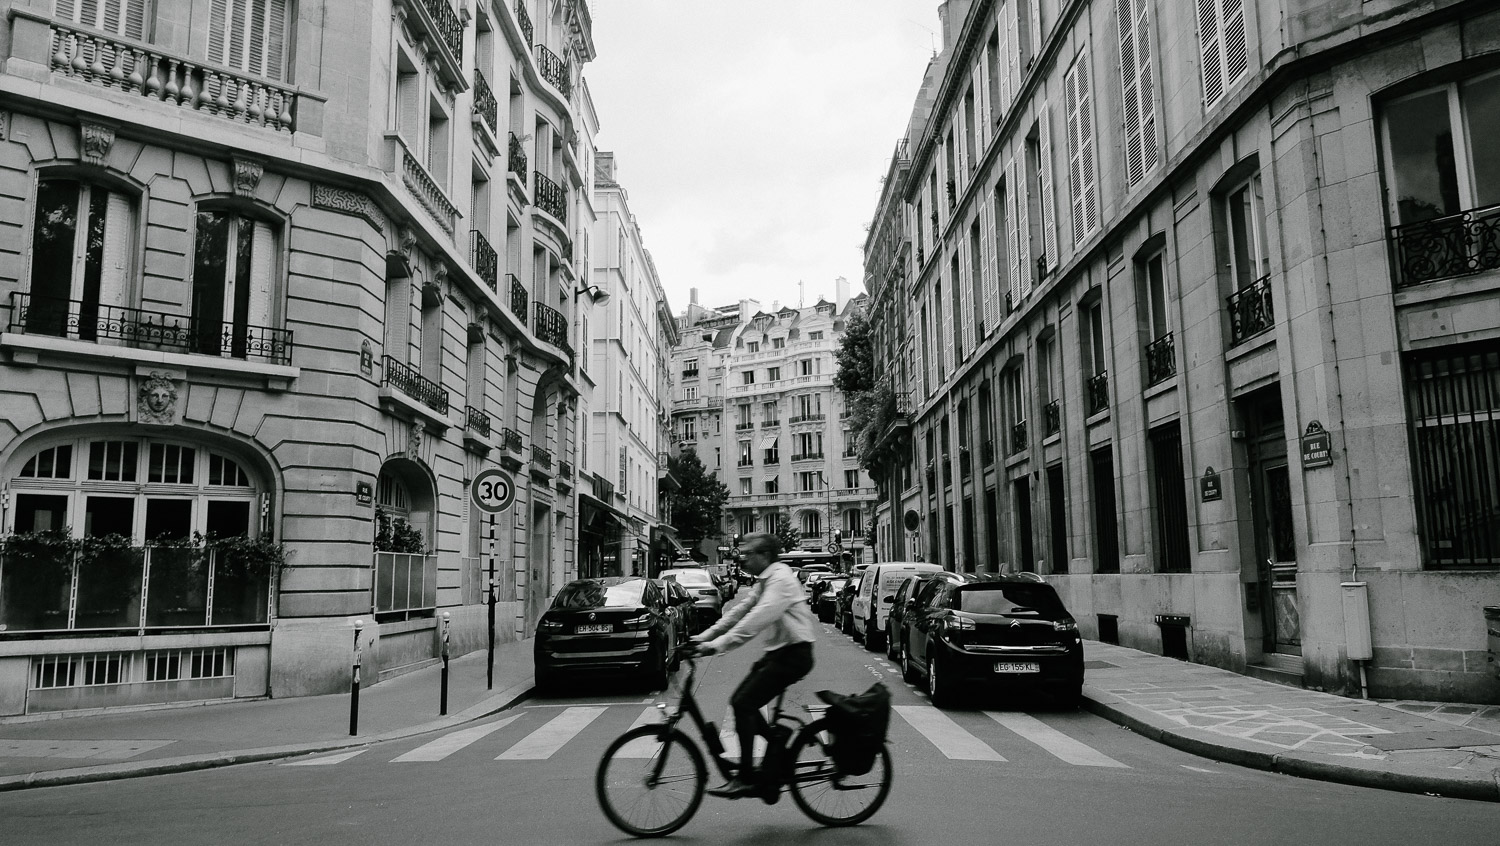 "A man rides his bike through the streets of Paris. Travel photography and guide by © Natasha Lequepeys for ""And Then I Met Yoko"". #paris #paristravel #photoblog #travelguide #france #parisitinerary #parishighlights #parissights #travelblog #travelphotography #landscapephotography #travelitinerary #fujifilm #paristravelguide #architecturephotography #europe #travelblogger #wanderlust #explore #travel"